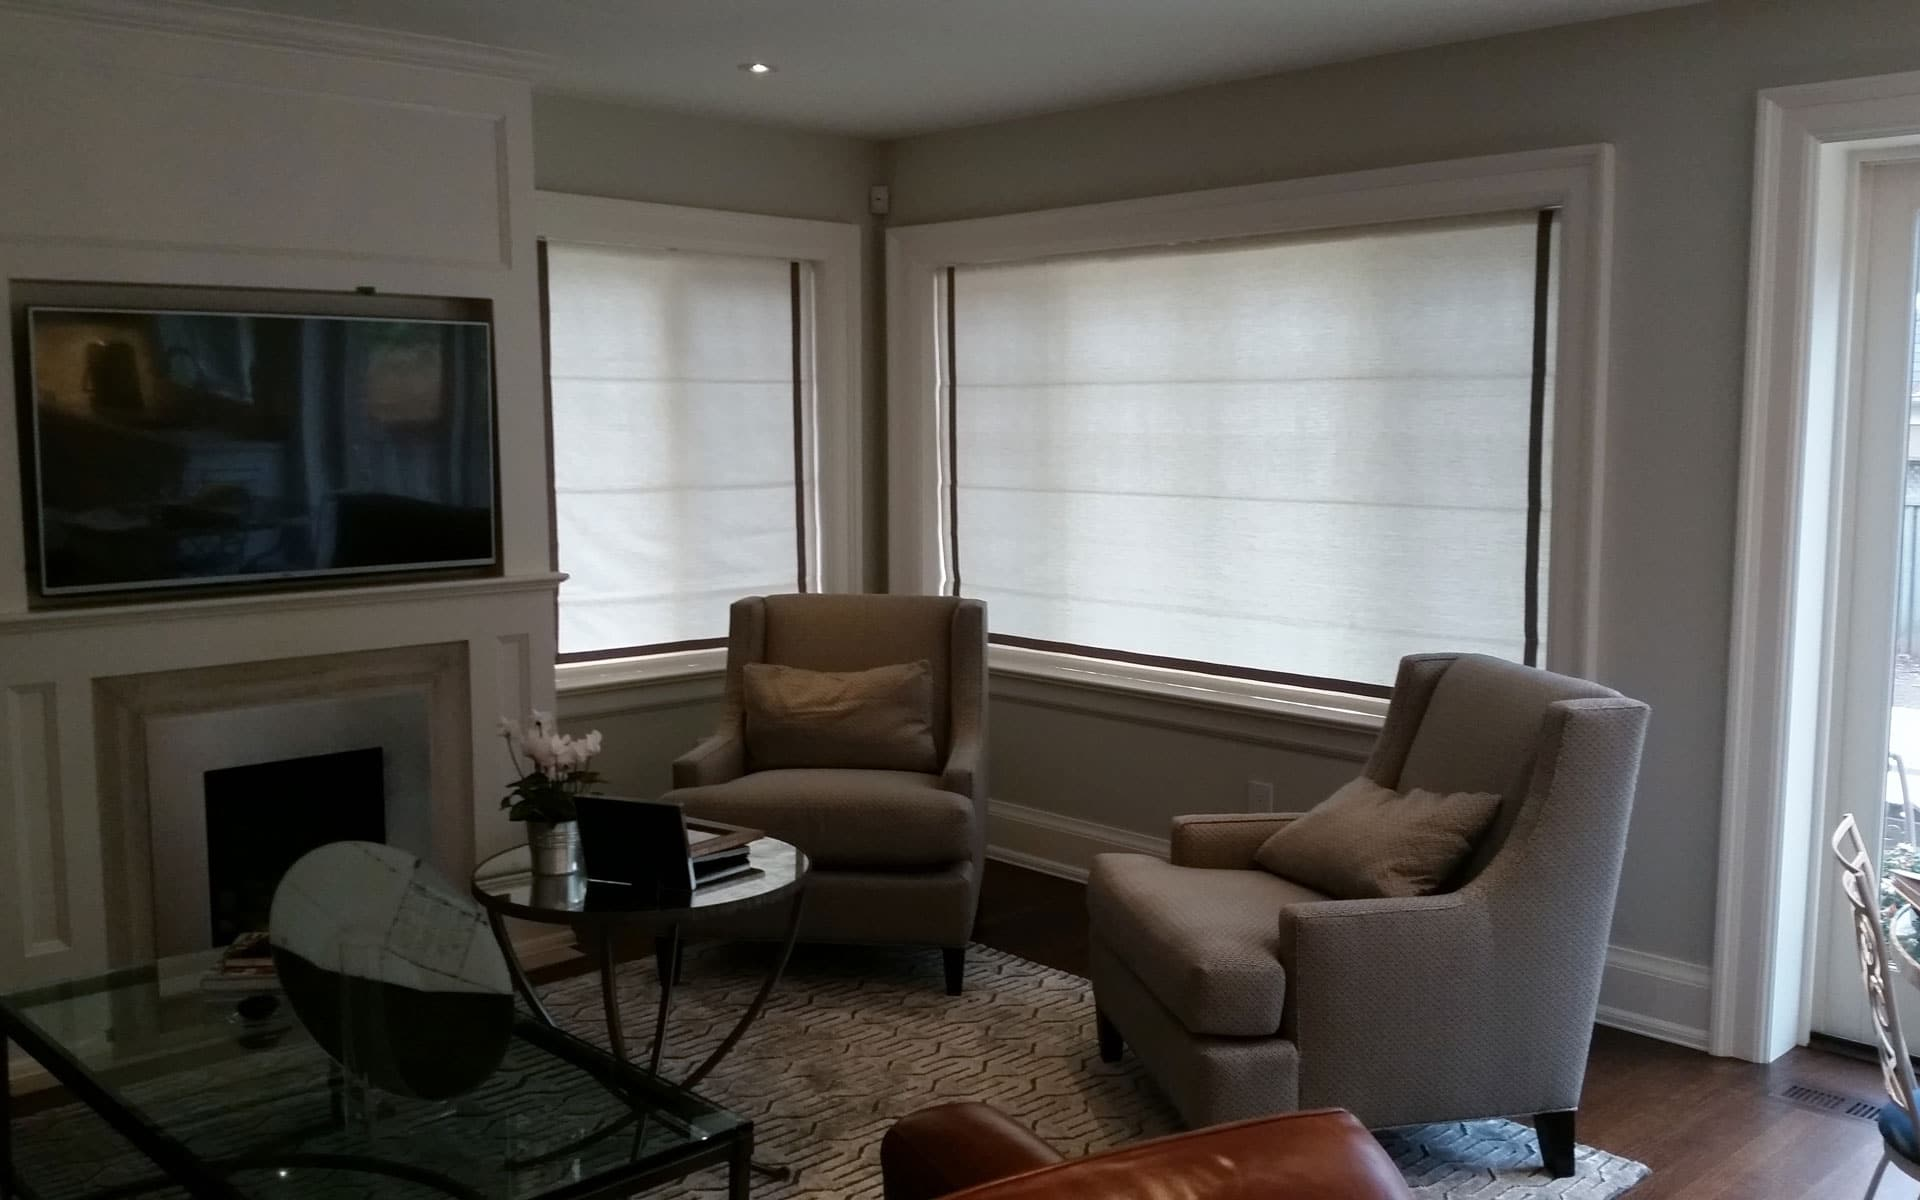 company back motorized edward and drapes shade curtains the window to gallery garry